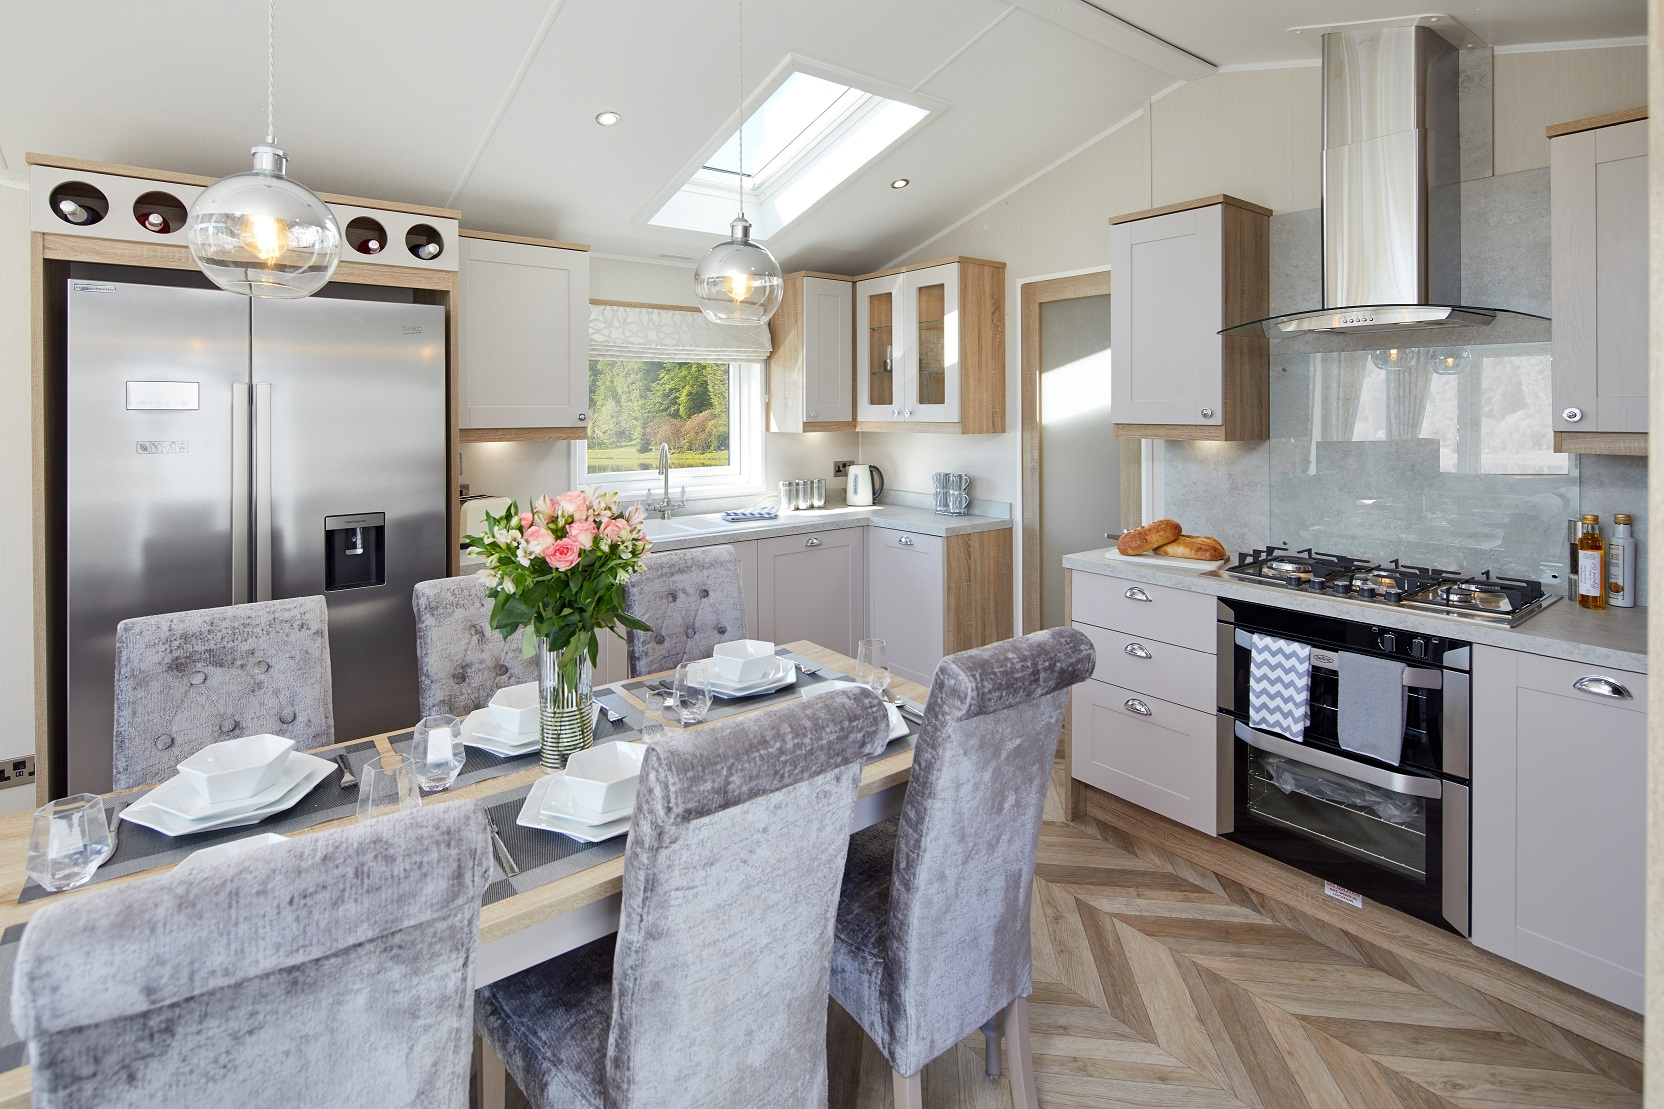 Willerby Vogue Classique: New Static Caravans and Holiday Homes for Sale, Clifton, Morpeth Large Image 3